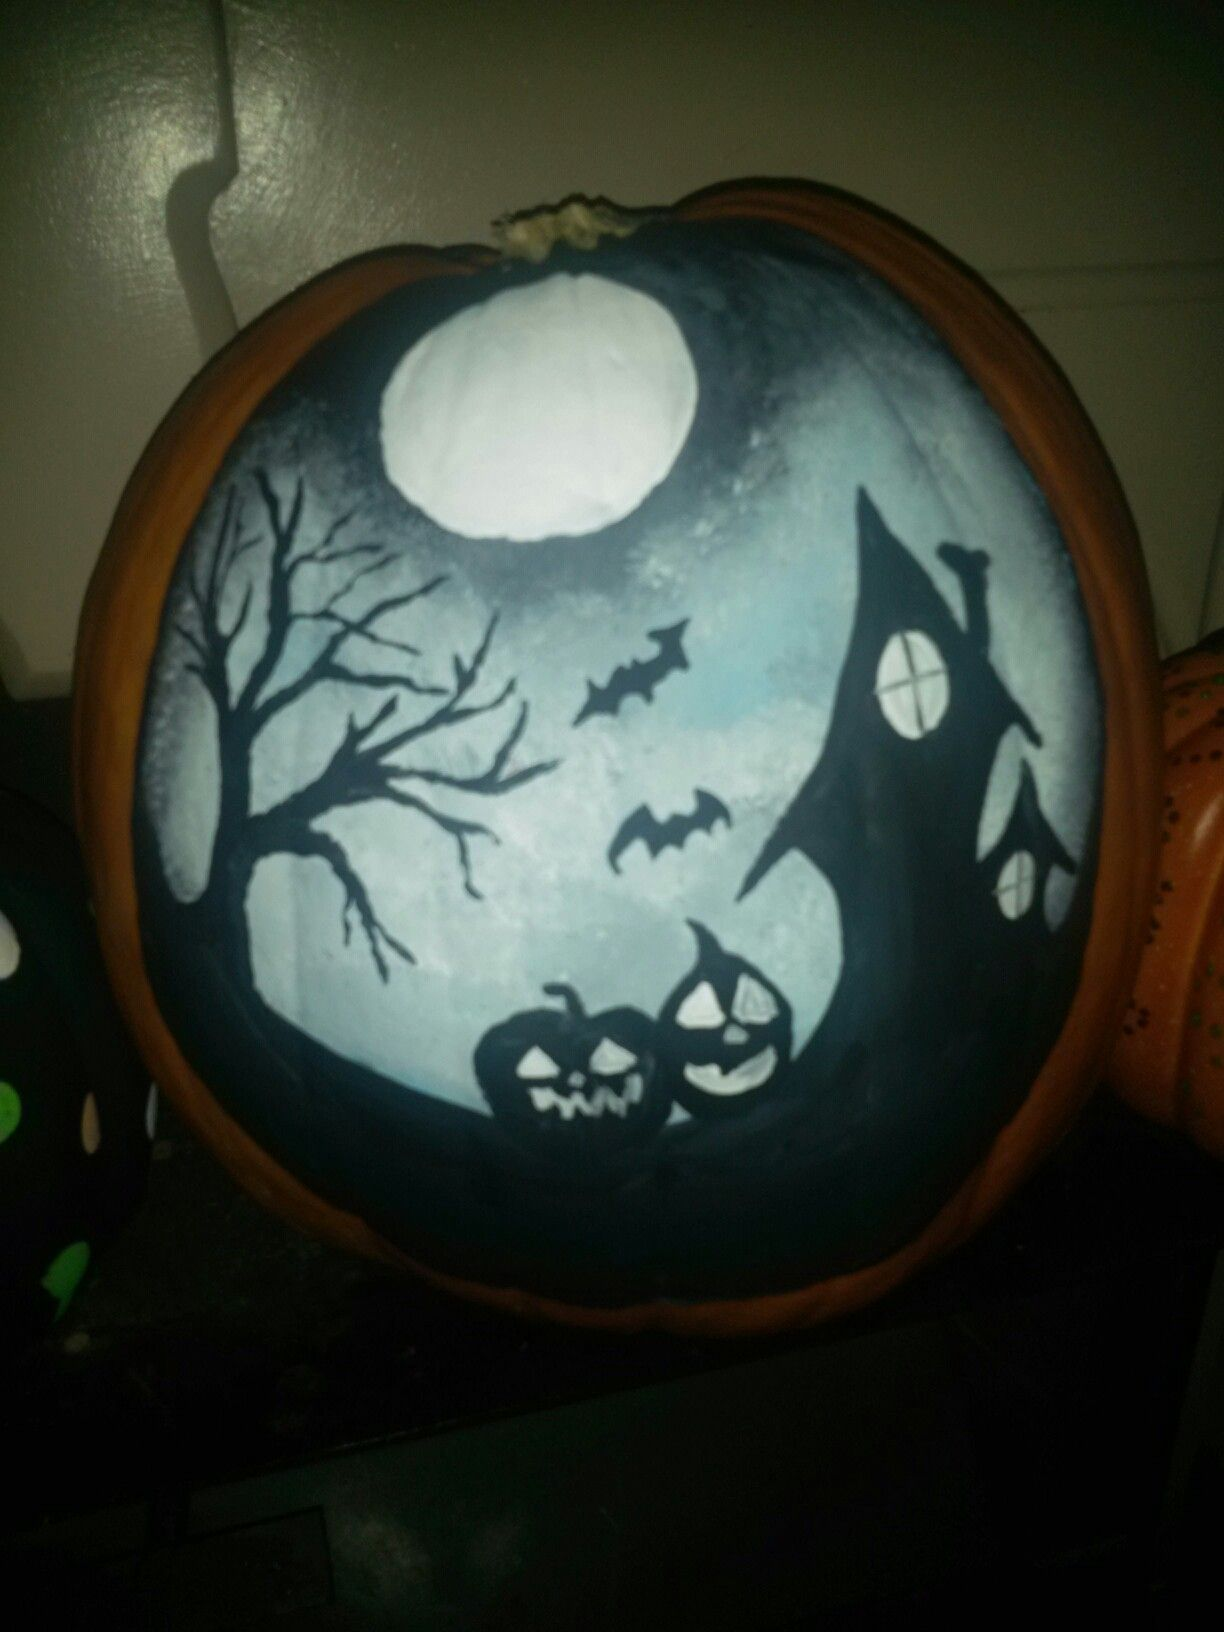 Spooky Scene Painted Pumpkin Pumpkin Halloween Decorations Halloween Pumpkins Painted Spooky Pumpkin